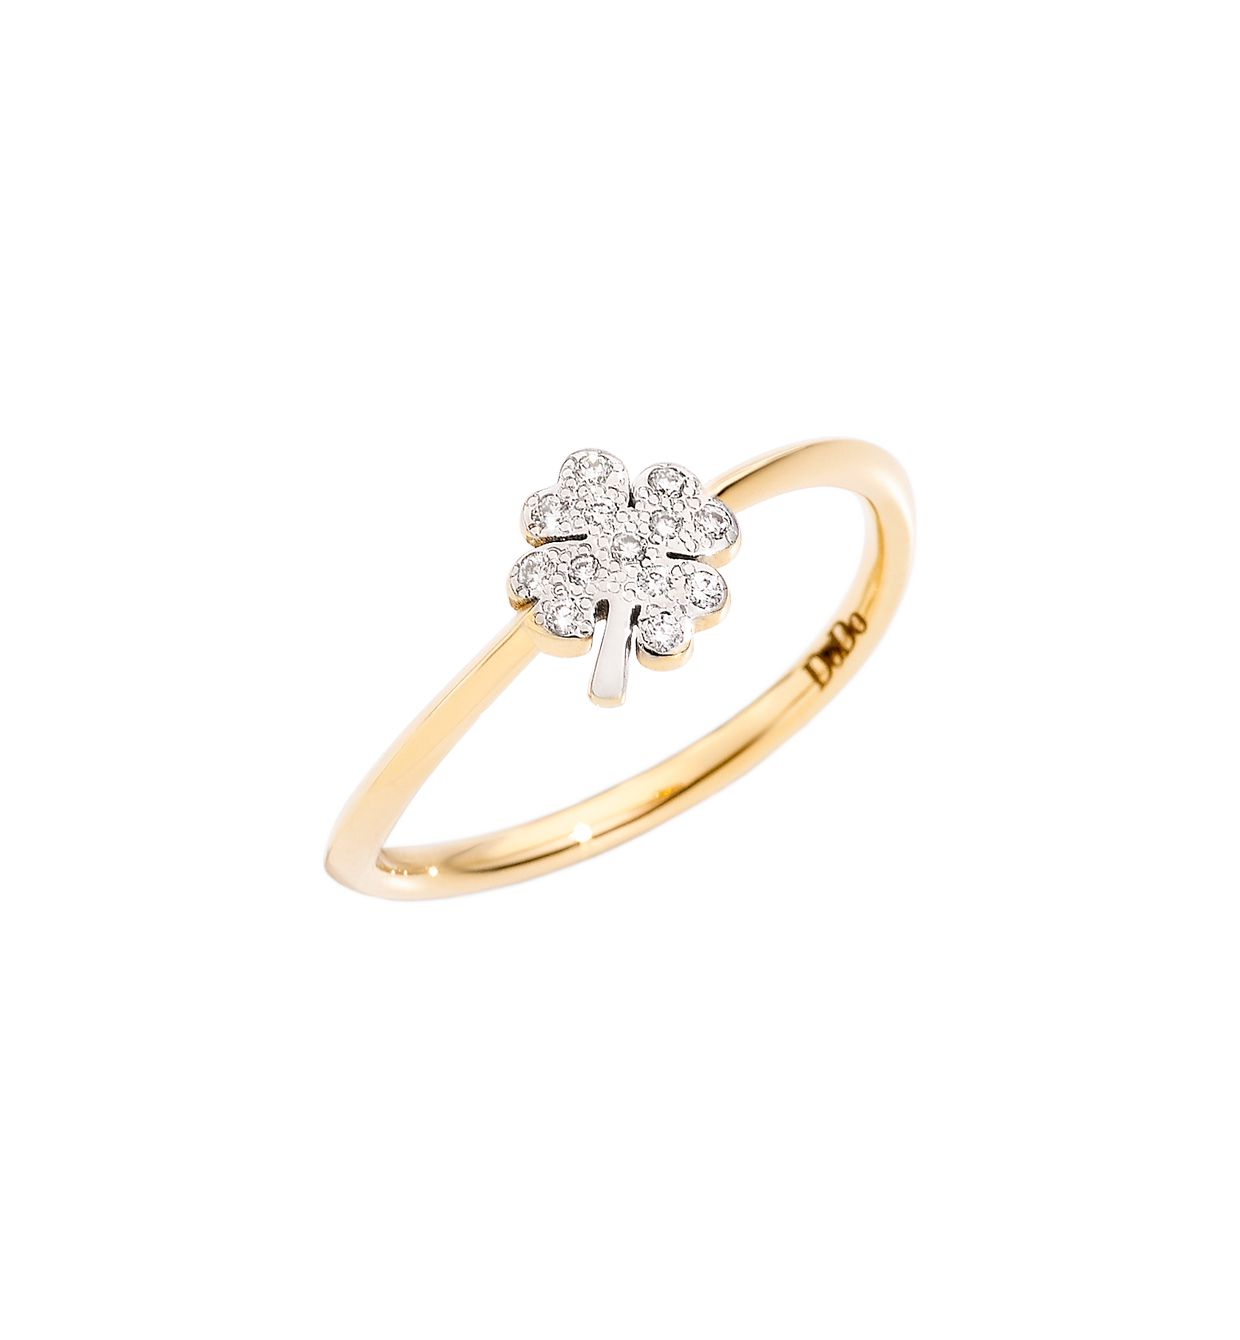 DoDo Four Leaf Clover Ring in 18k Yellow Gold with White Diamonds - mini - Orsini Jewellers NZ